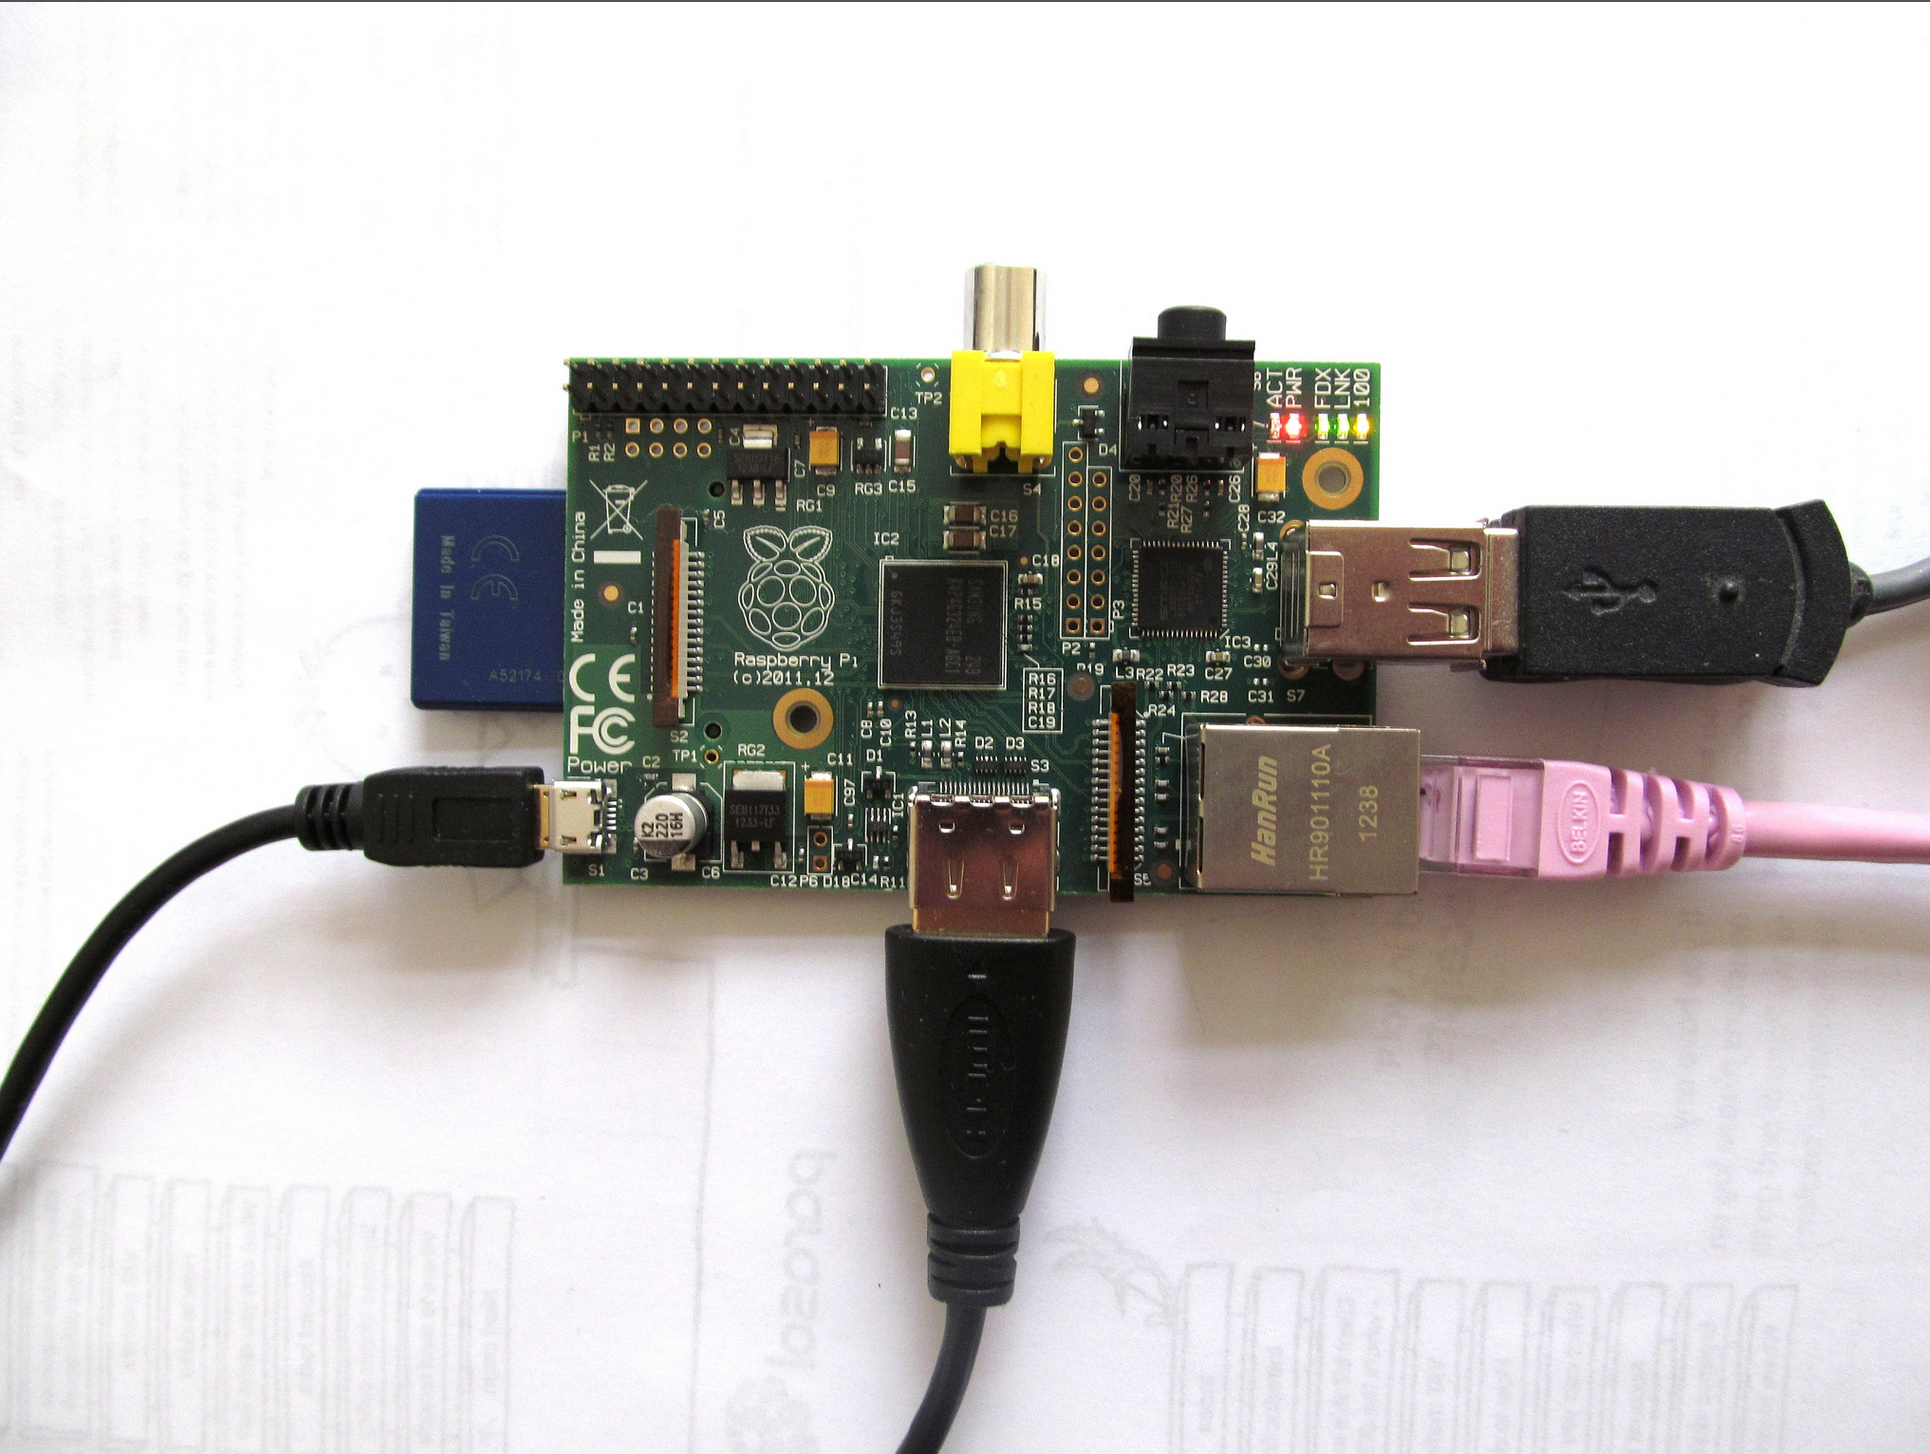 Deep learning on the Raspberry Pi! | Pete Warden's blog